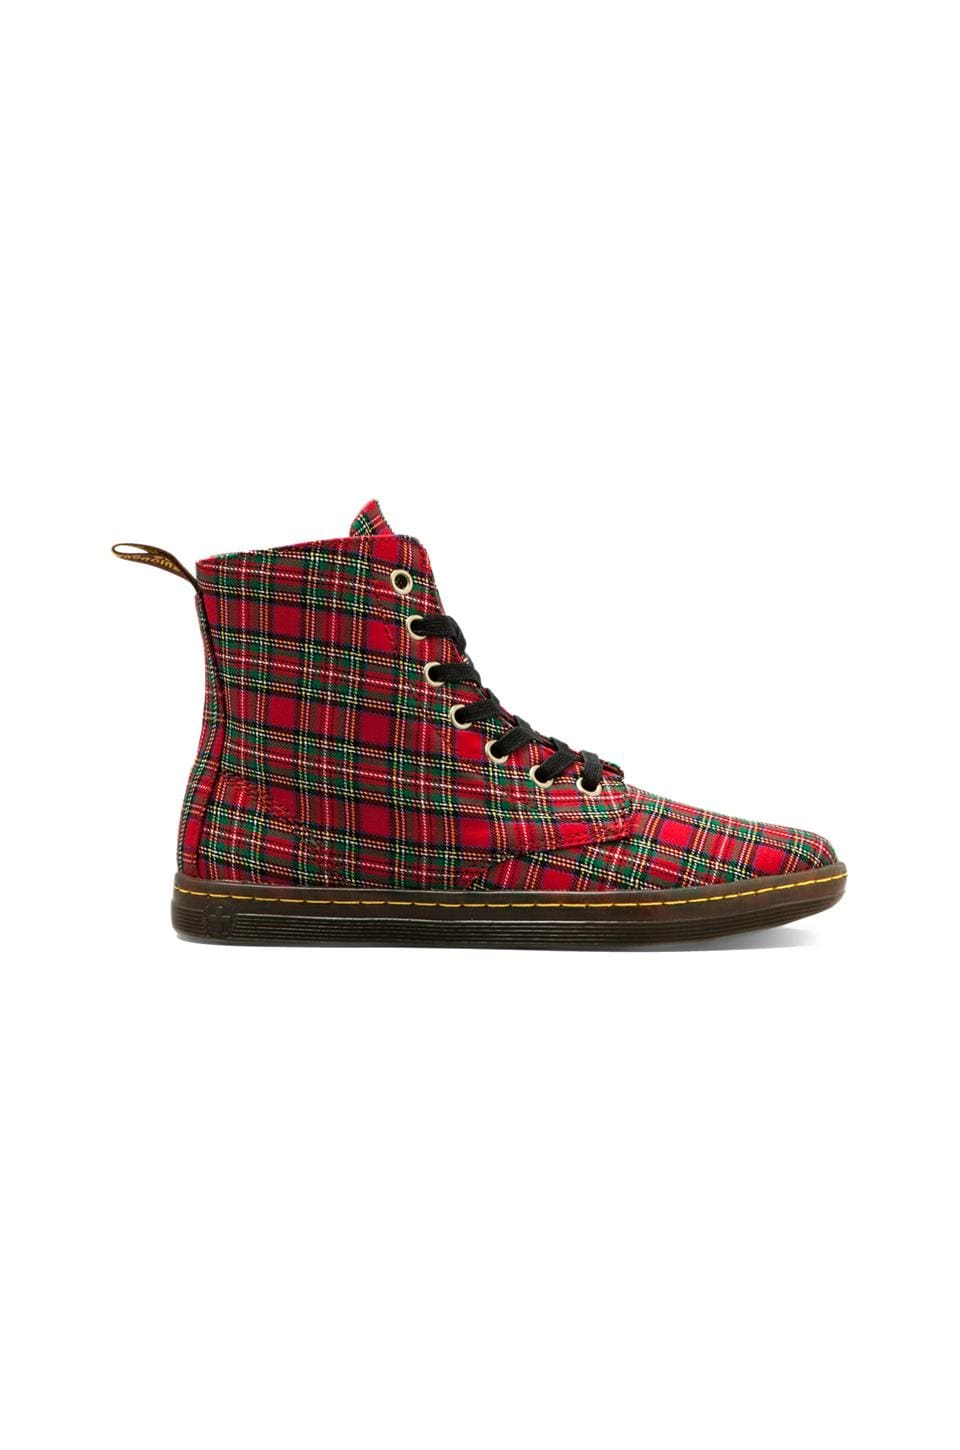 Dr. Martens Hackney 7-Eye Boot in Red Stewart